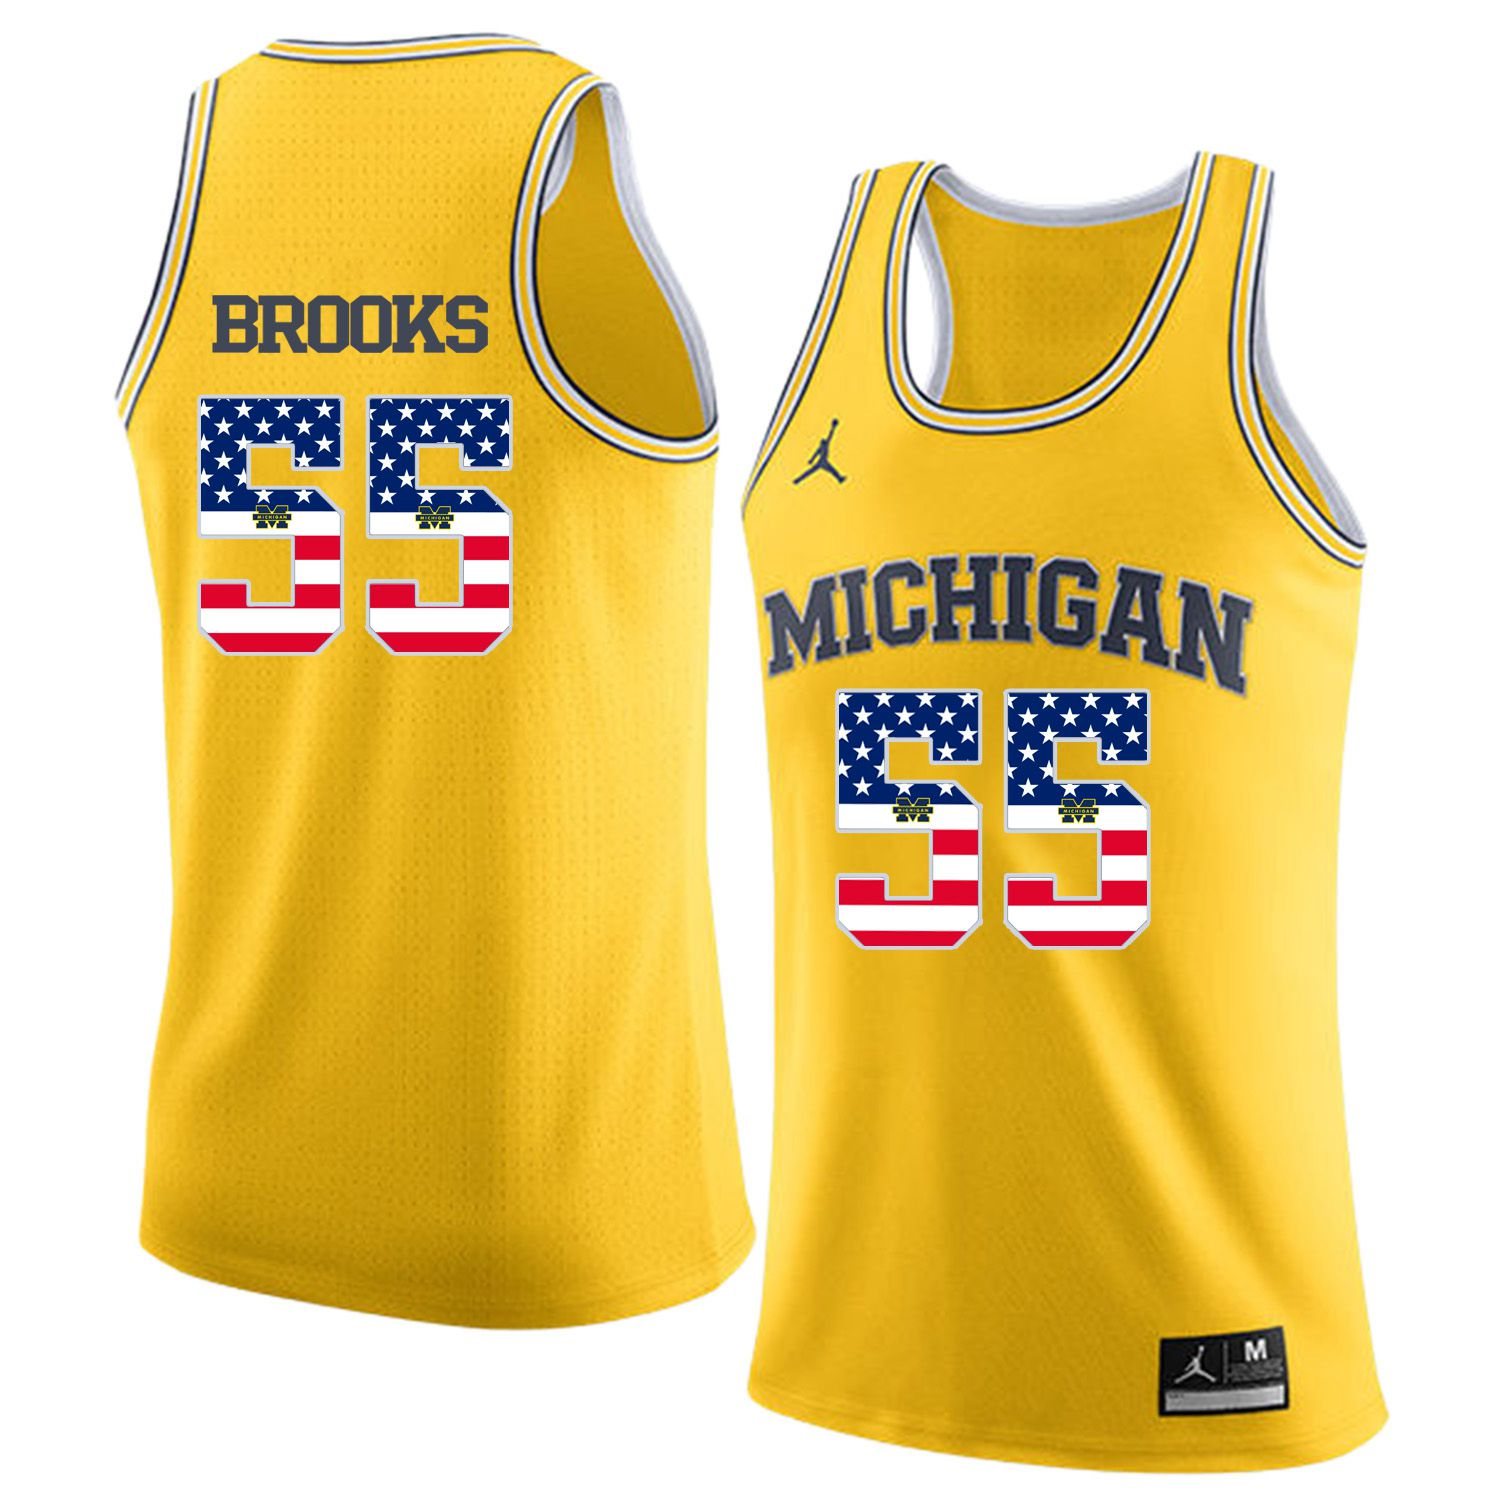 Men Jordan University of Michigan Basketball Yellow 55 Brooks Flag Customized NCAA Jerseys